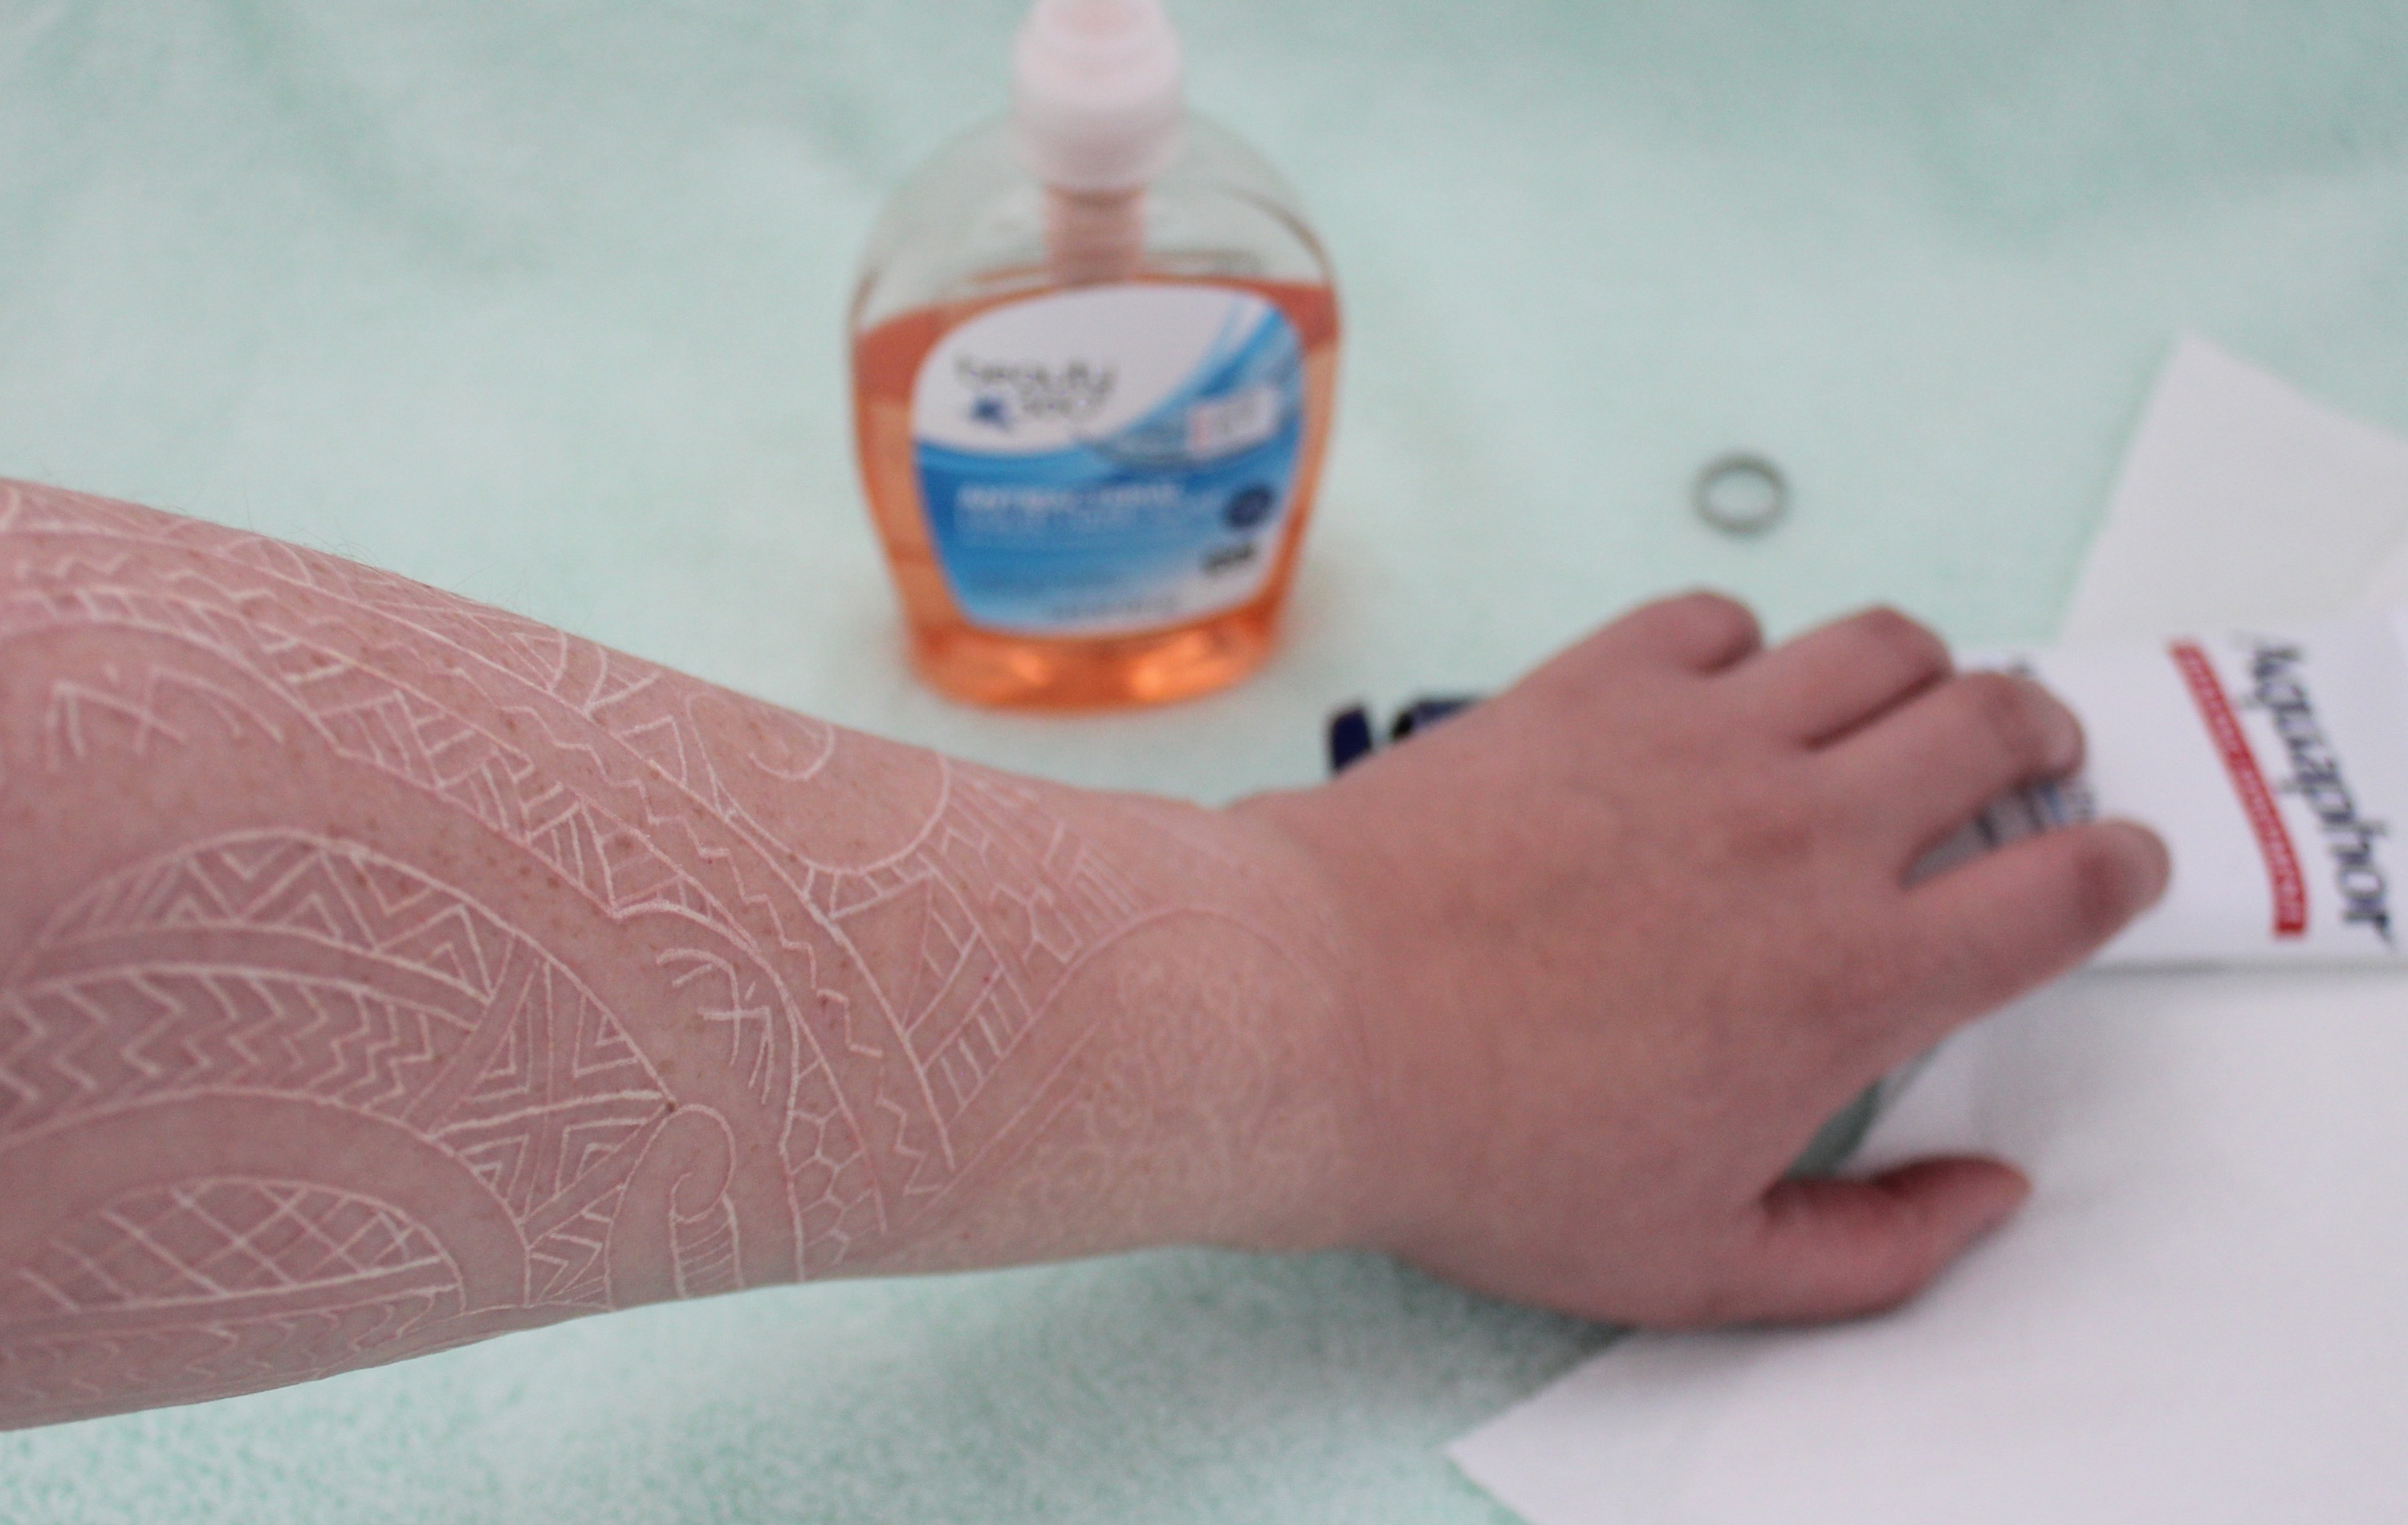 a tattooed arm reaching for aquaphor